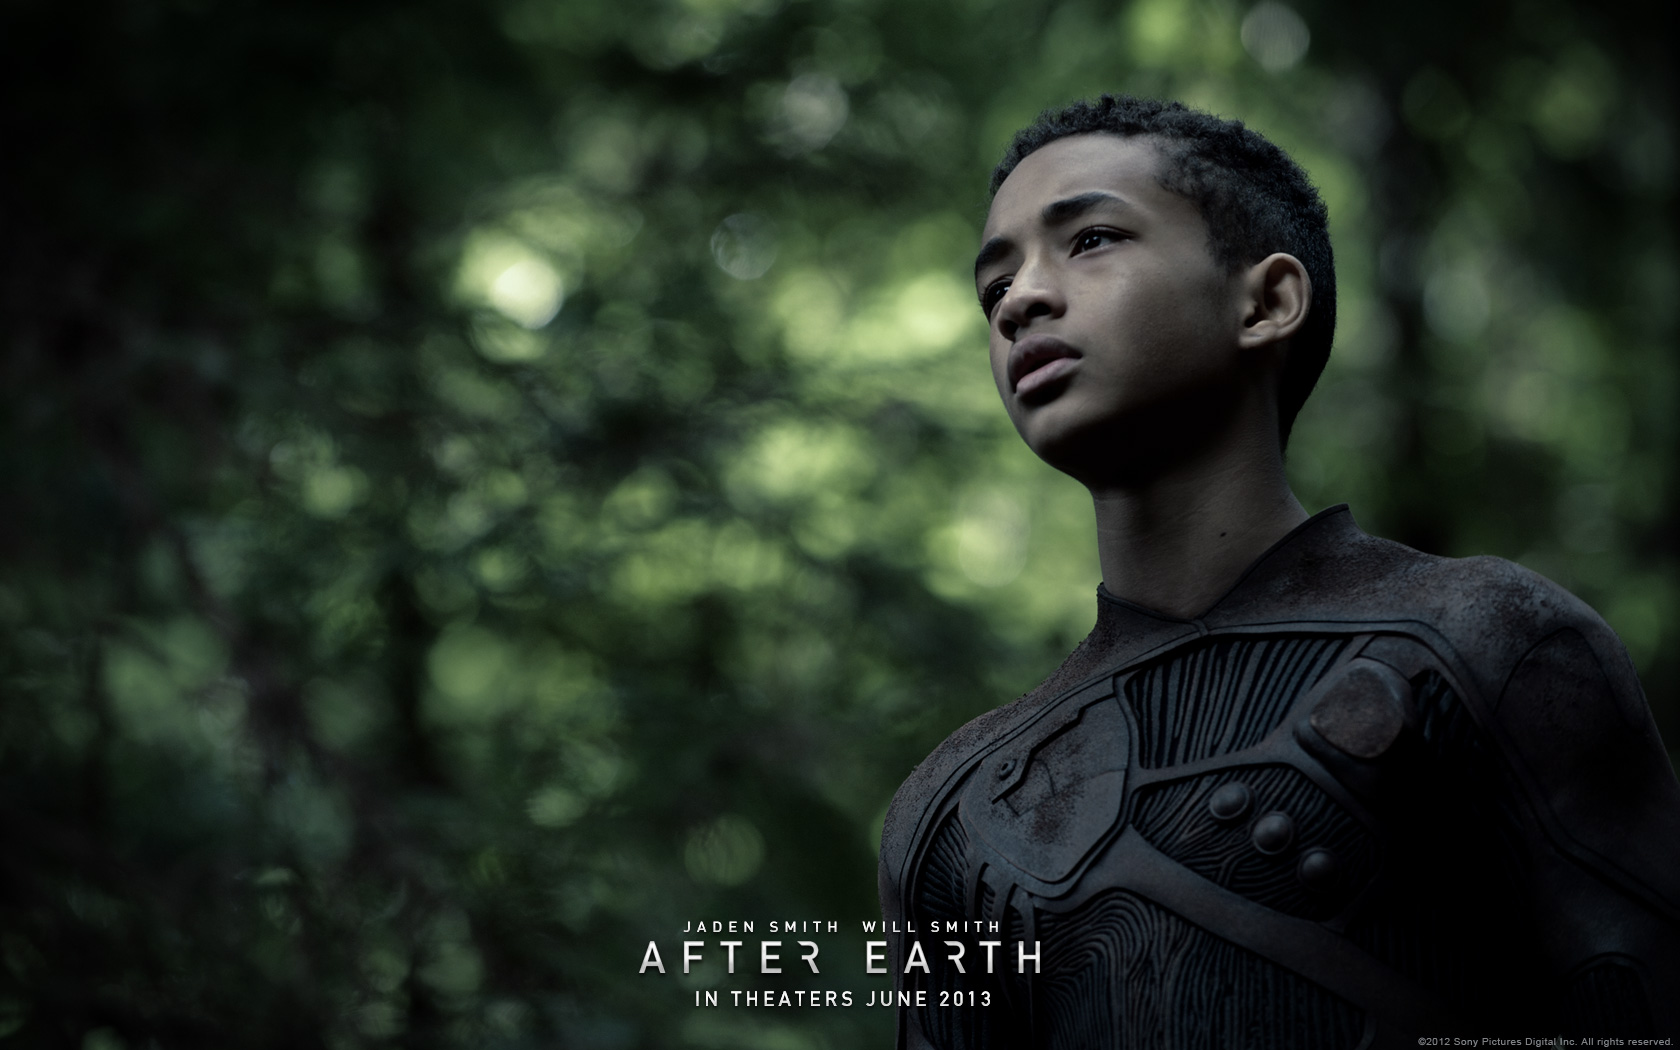 After Earth Wallpaper and Background Image 1680x1050 ID339276 1680x1050